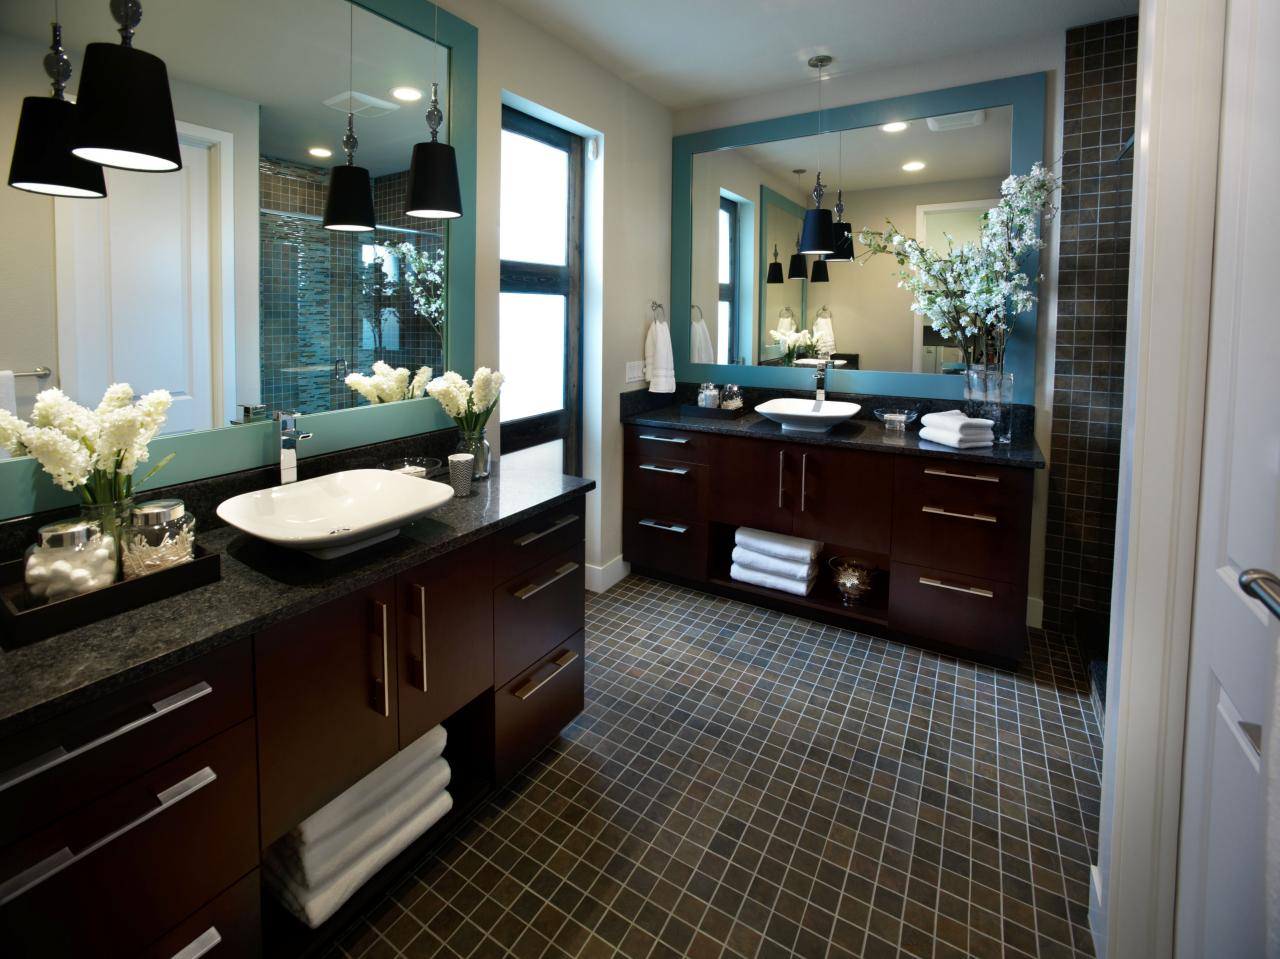 Modern bathroom design ideas pictures tips from hgtv for Hgtv small bathroom design ideas